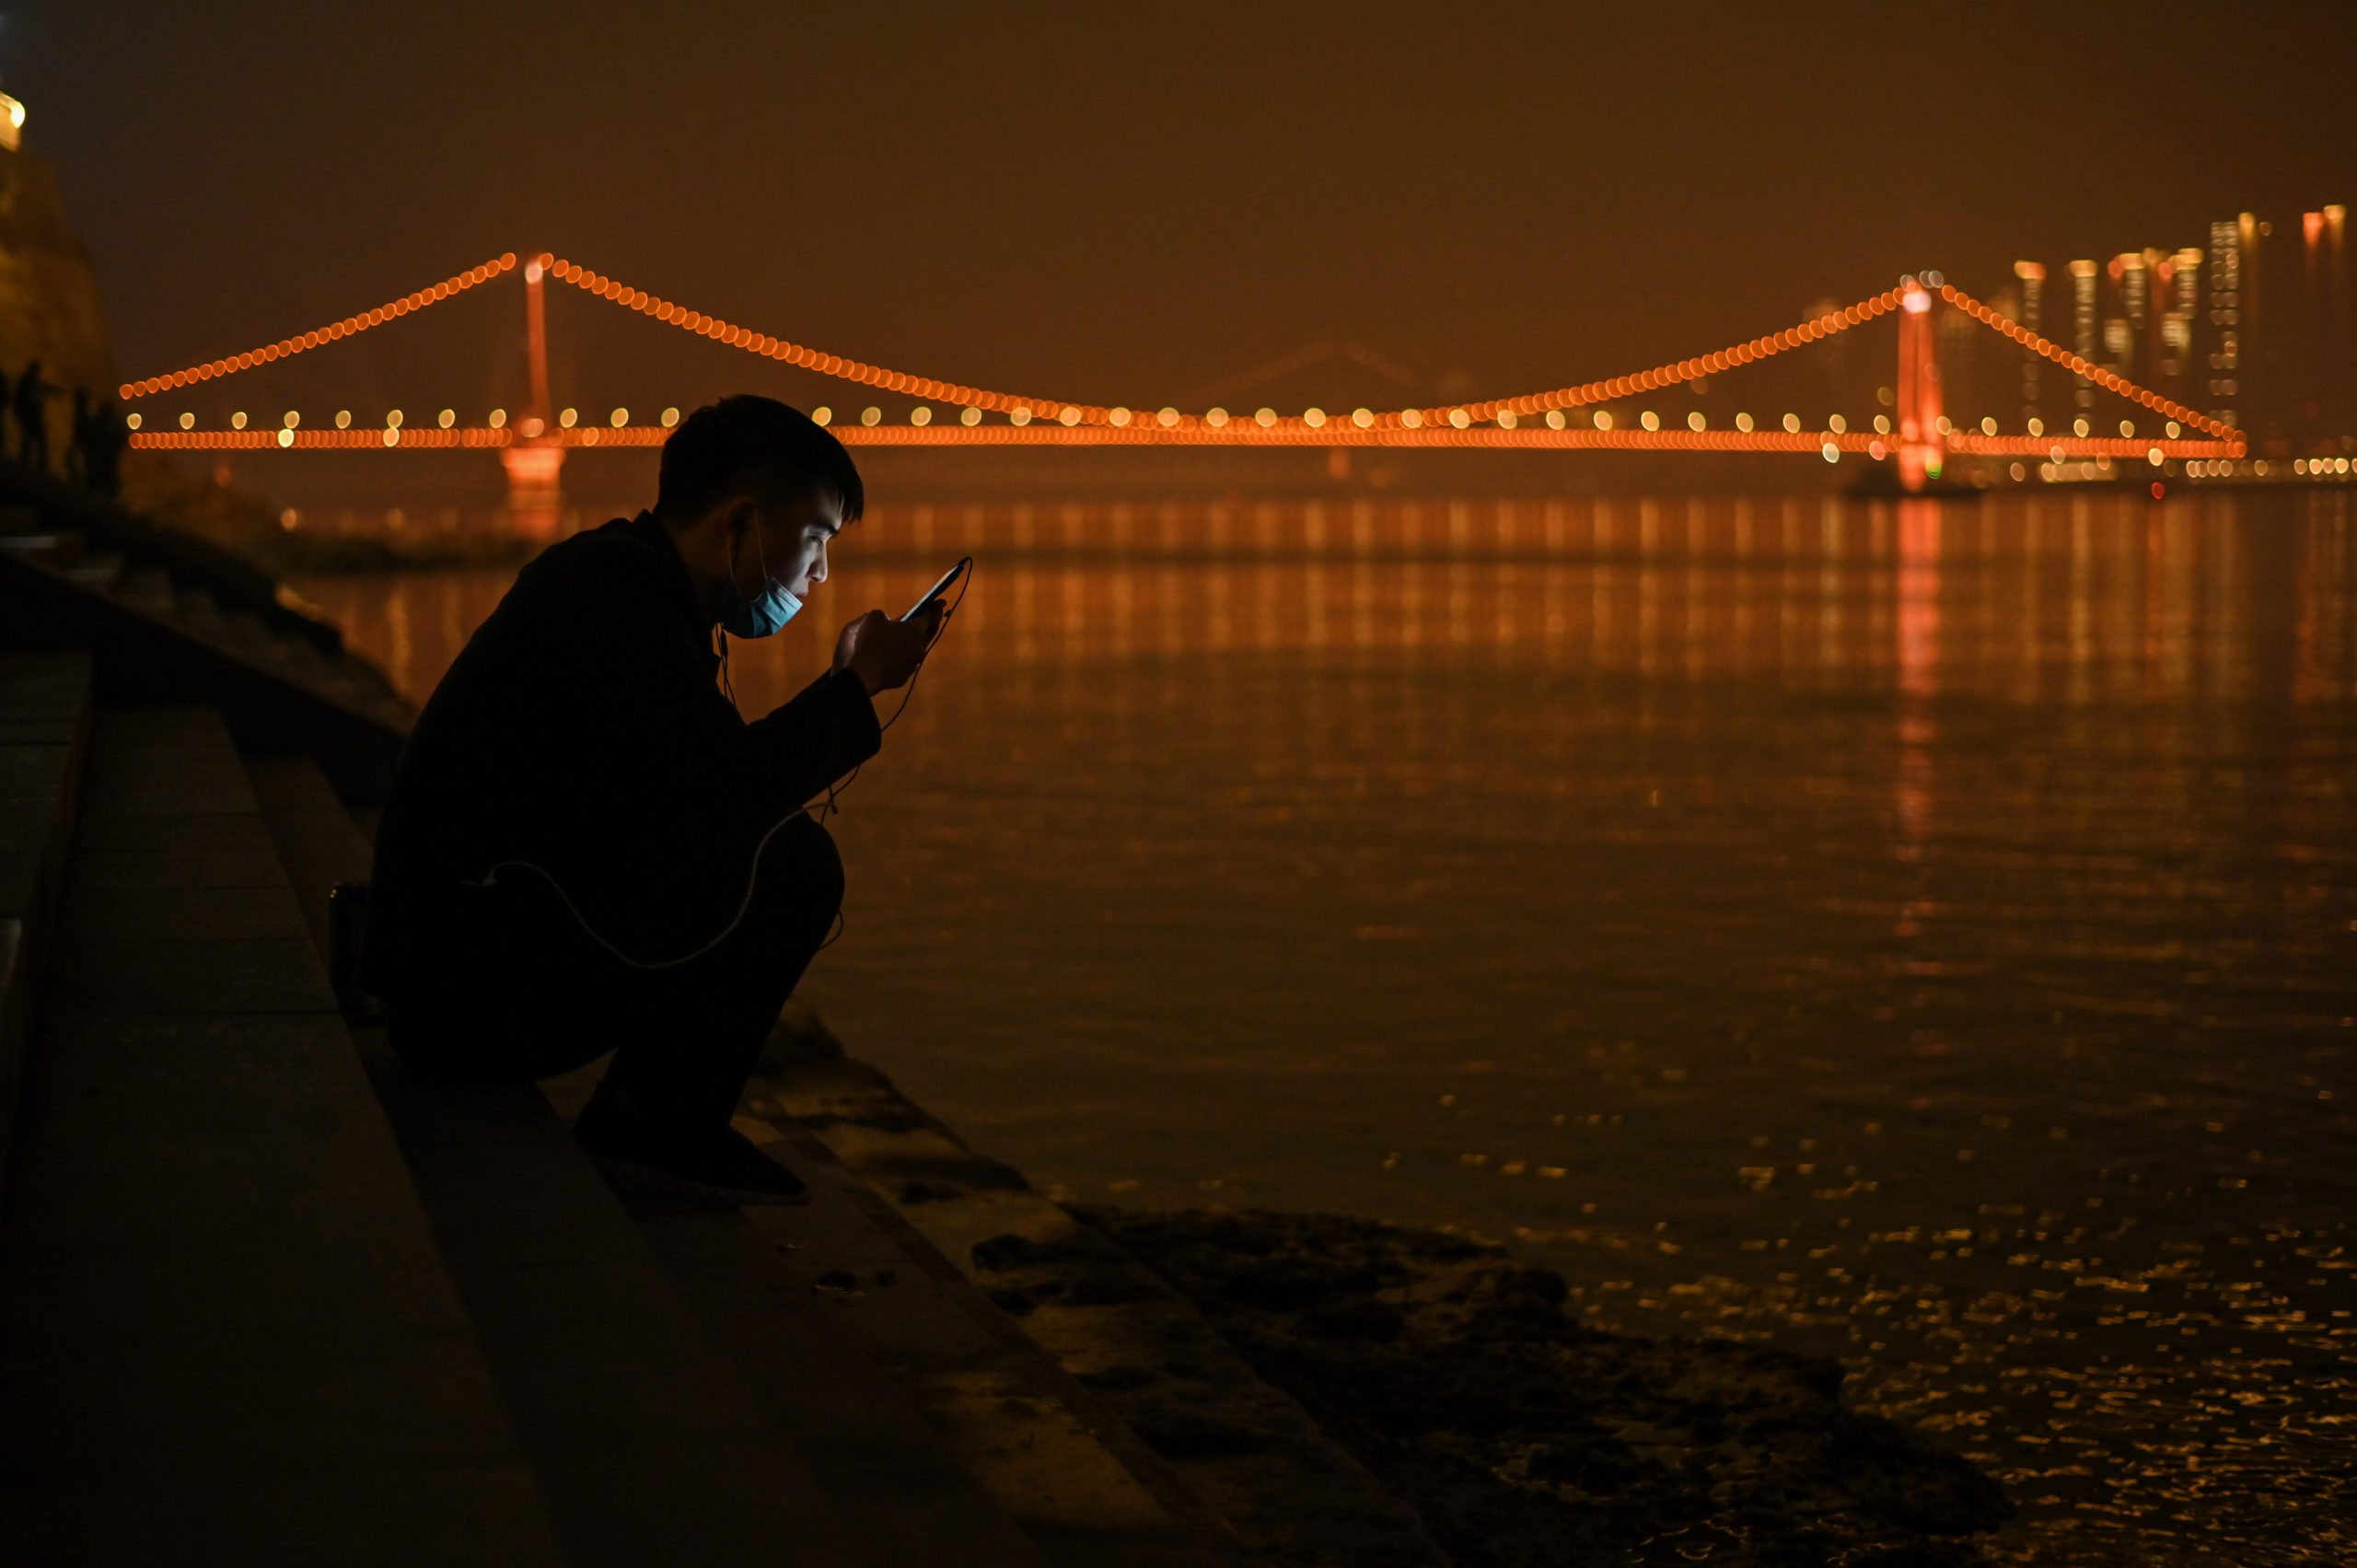 TOPSHOT - A man looks at his mobile phone as he sits on the banks of the Yangtze River in Wuhan in China's central Hubei province on February 11, 2021, ahead of the start of the Lunar New Year, which ushers in the Year of the Ox on February 12. (Photo by Hector RETAMAL / AFP) (Photo by HECTOR RETAMAL/AFP via Getty Images)